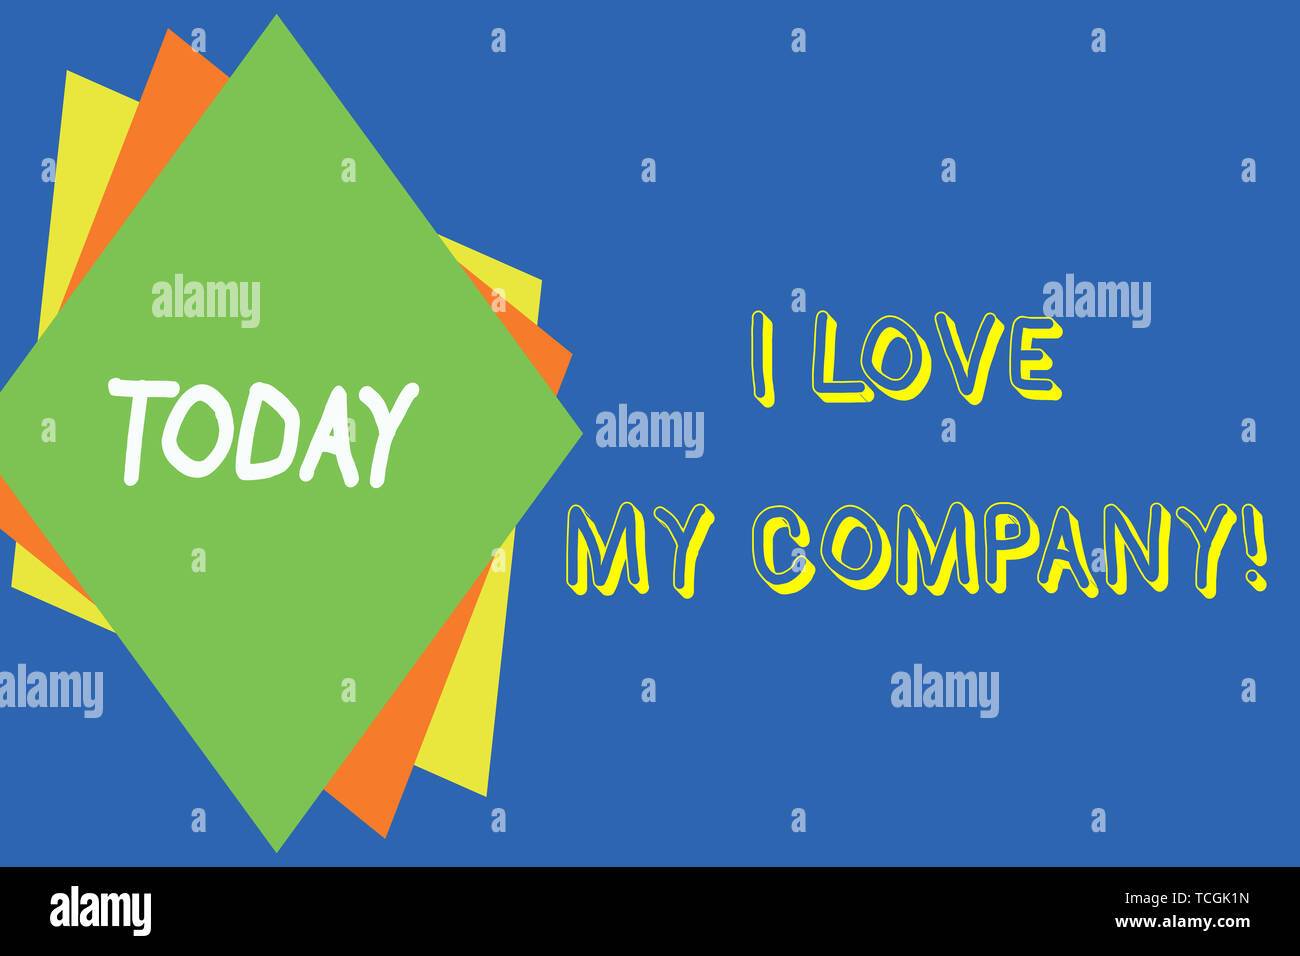 Writing note showing I Love My Company. Business concept for tell why admire their job and workplace Different colored paper sheets light background.  - Stock Image